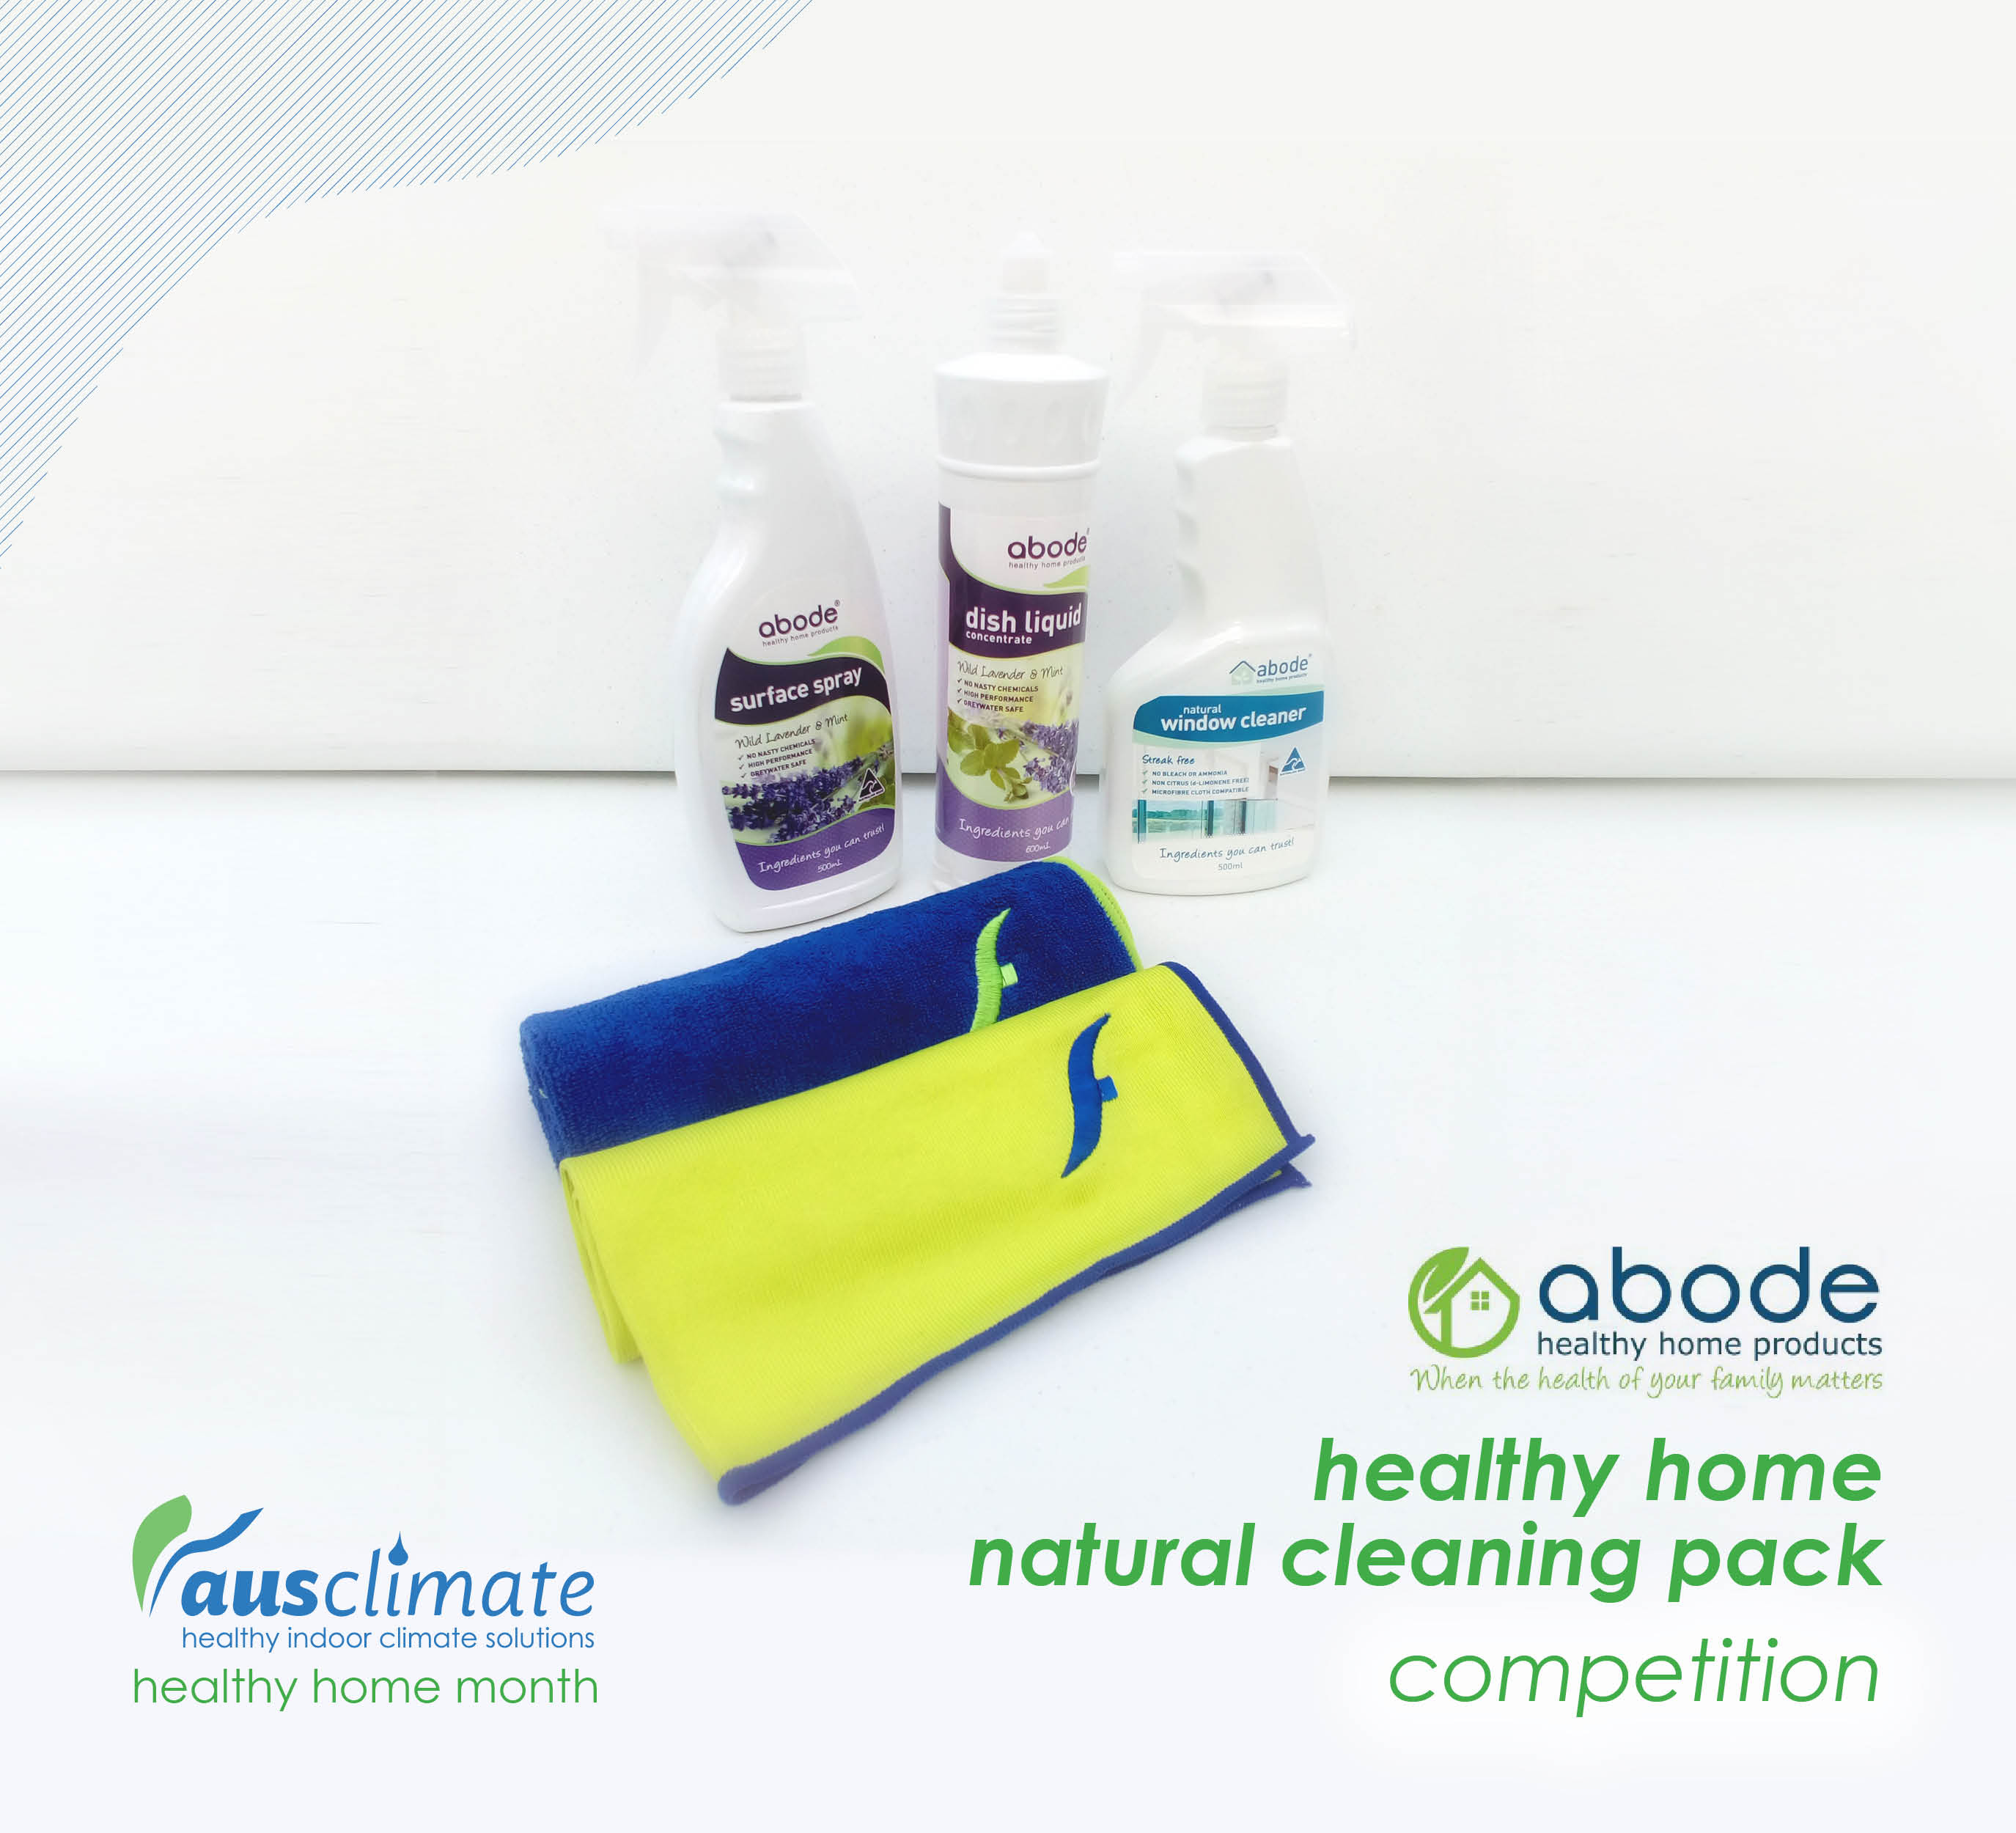 Ausclimate Healthy Home Moment Cleaning Pack Competition